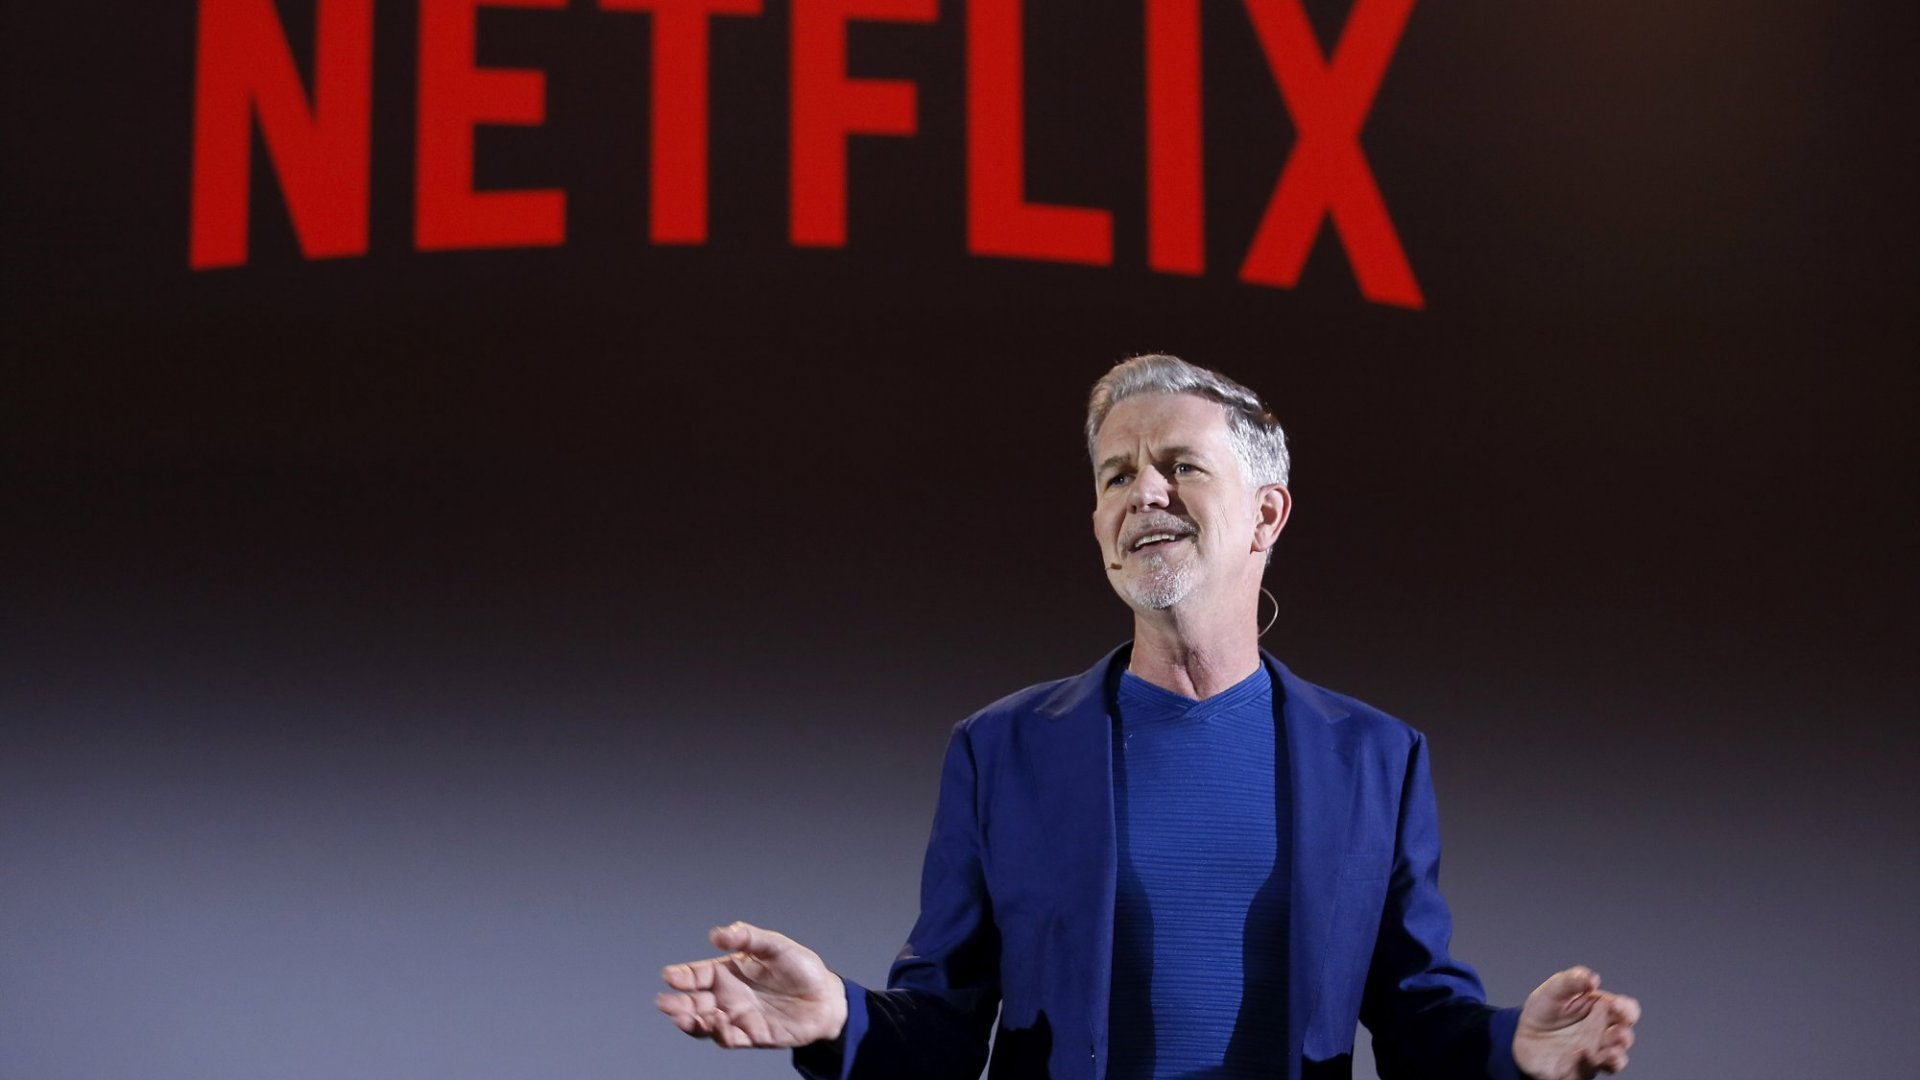 Over-Simplifying Your Operations Can Actually Hurt Your Business, Says Netflix Founder Reed Hastings